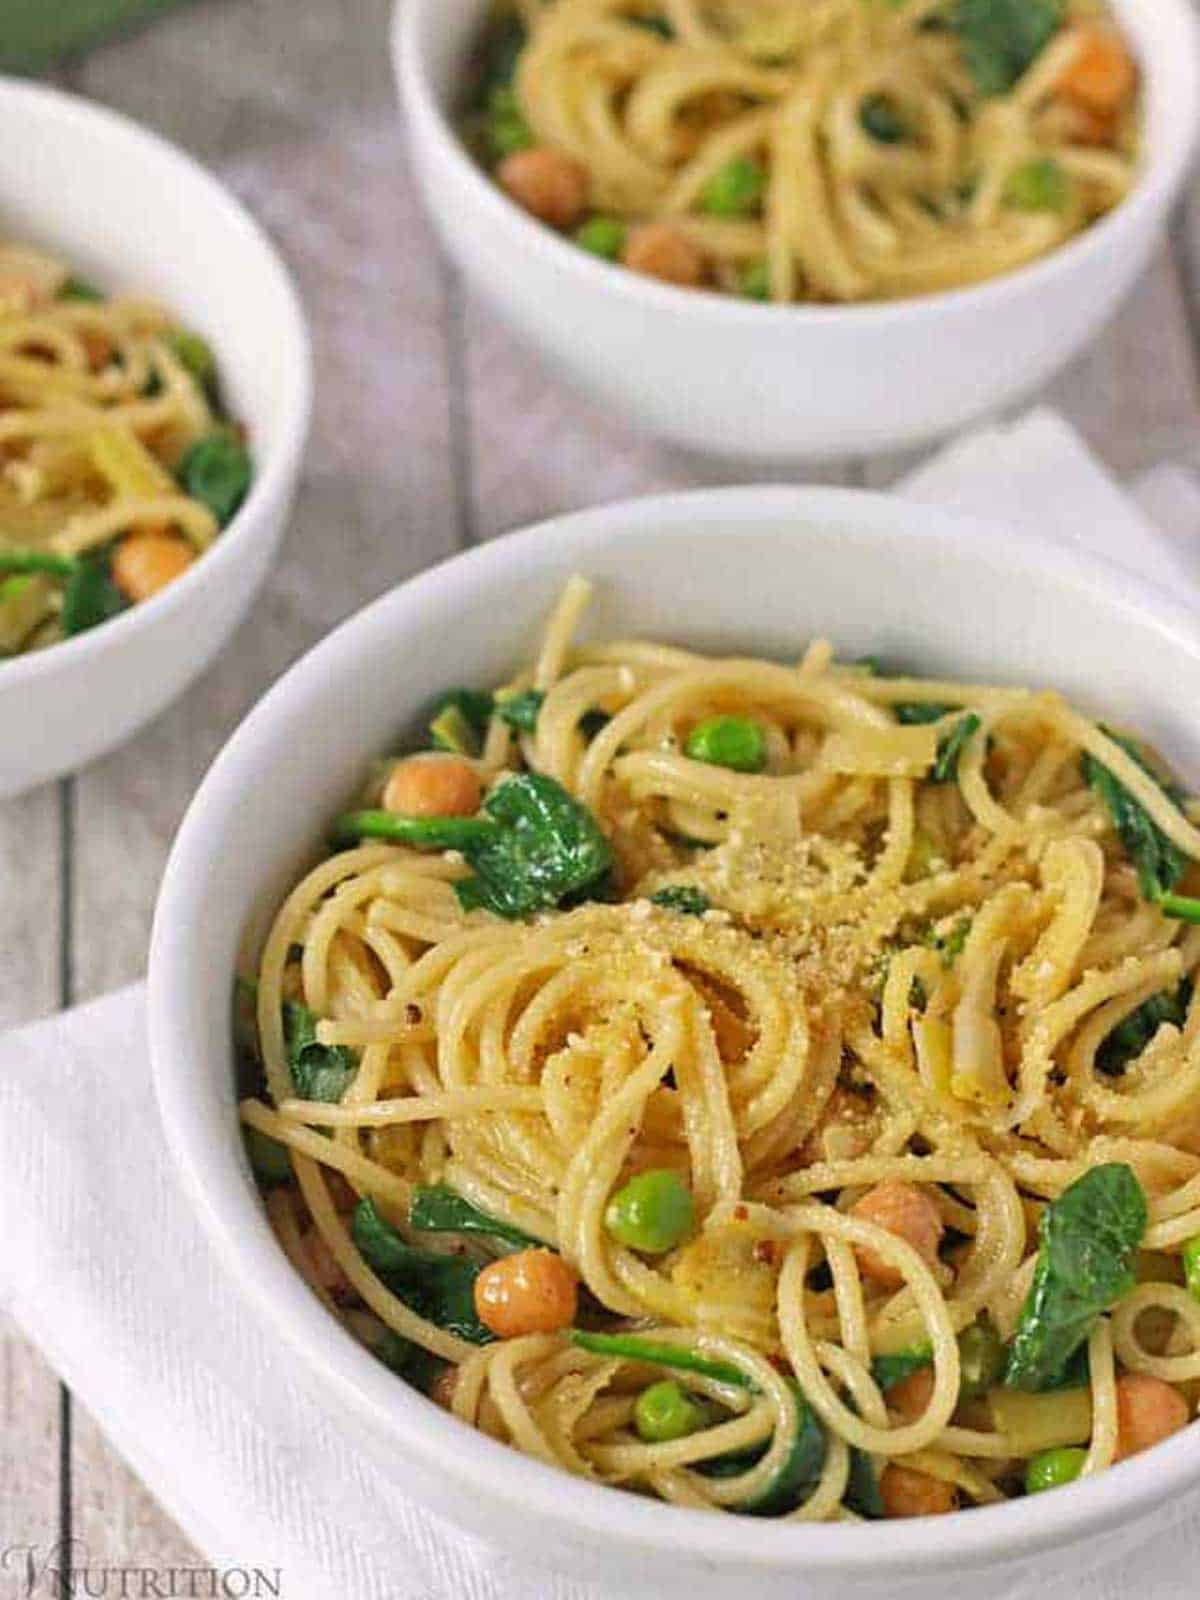 Bowls of pasta and veggies, peas, chickpeas and spinach on white surface.